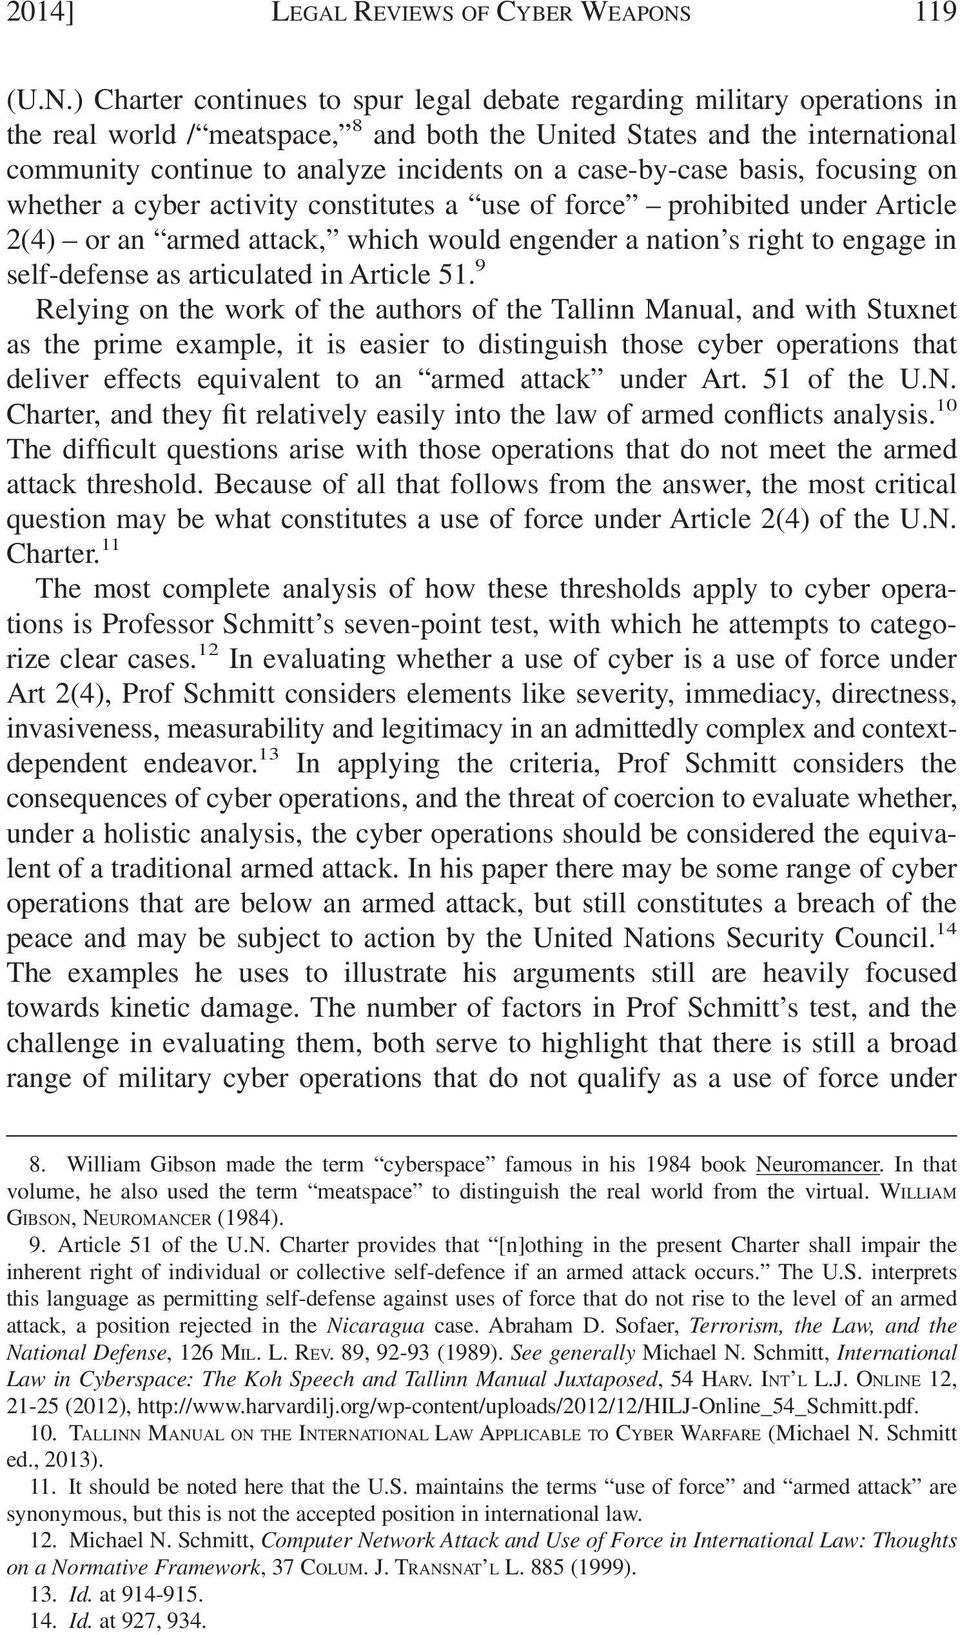 ) Charter continues to spur legal debate regarding military operations in the real world / meatspace, 8 and both the United States and the international community continue to analyze incidents on a